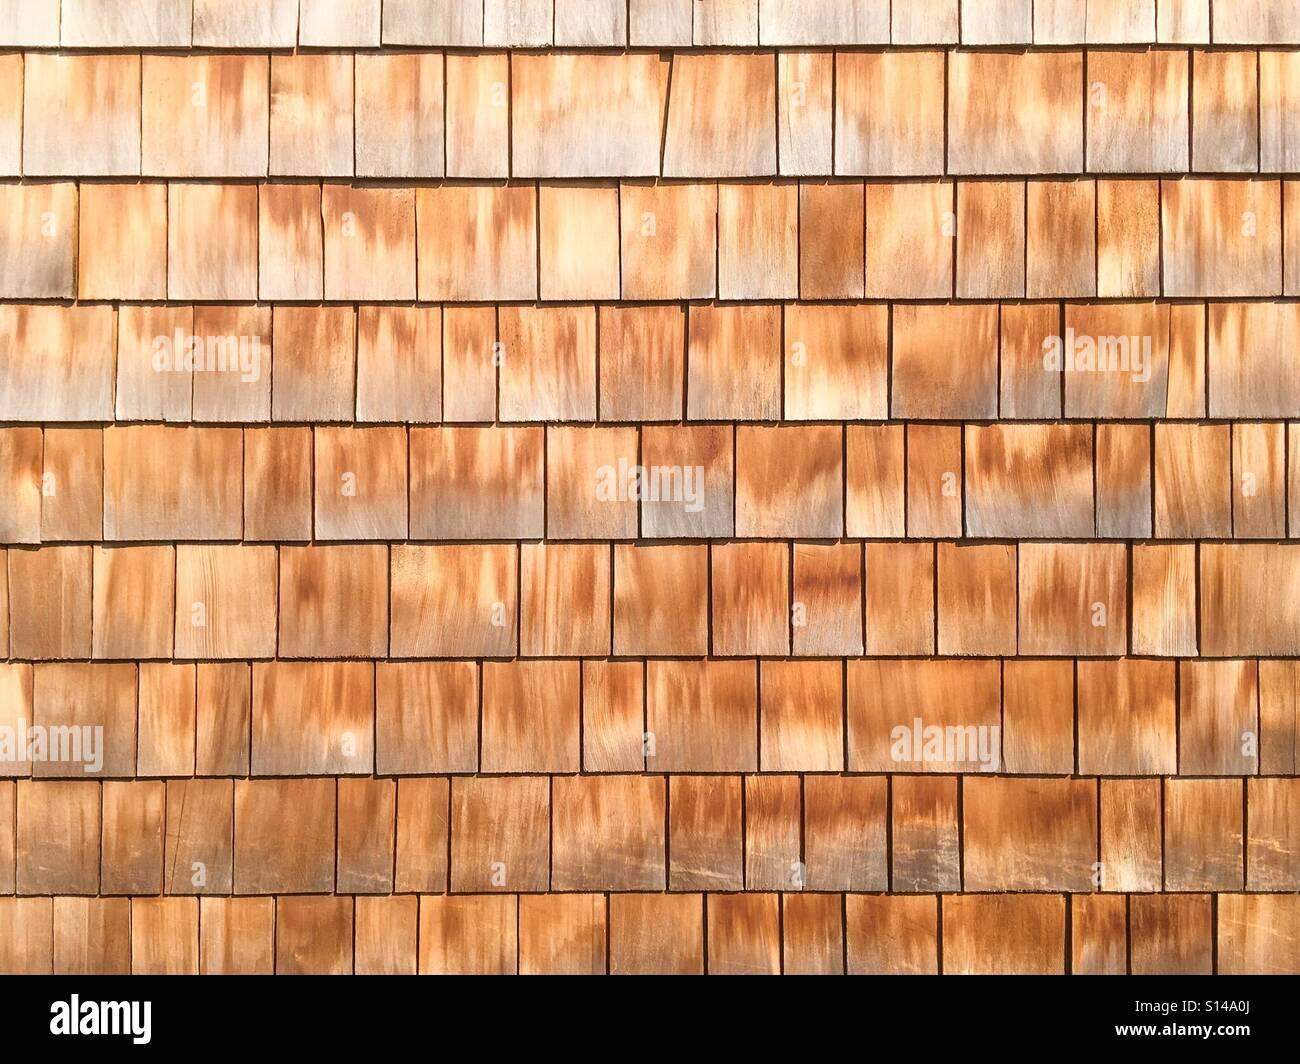 Wooden wall with planks. - Stock Image